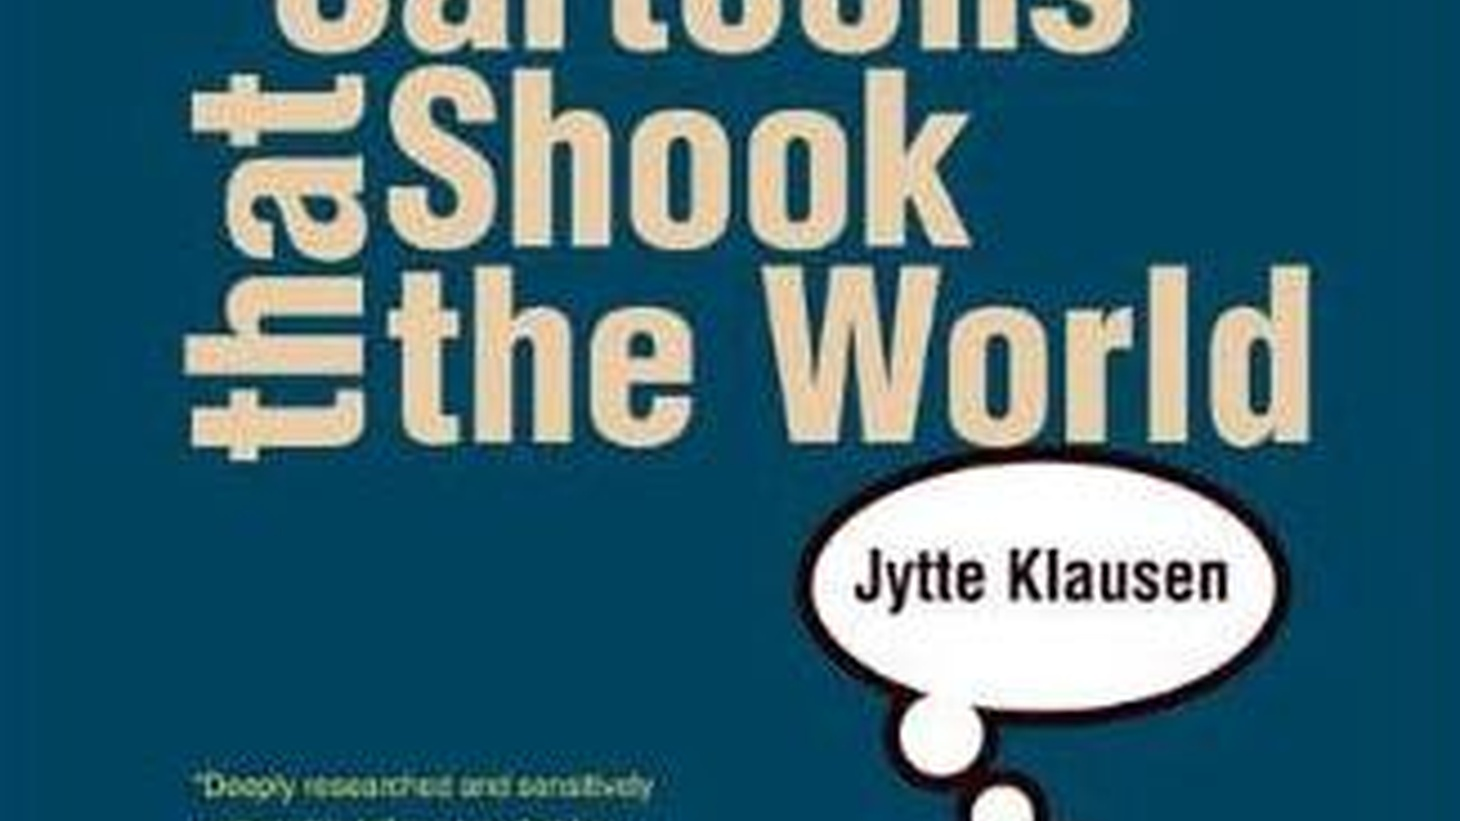 Yale University is publishing a book about the controversial cartoons that appeared in a Danish newspaper depicting the prophet Mohammed, which resulted in worldwide Islamic protests, riots and deaths. But the book itself will omit any and all images of the prophet. Jonathan Kirsch discusses this decision with religious scholars and others.